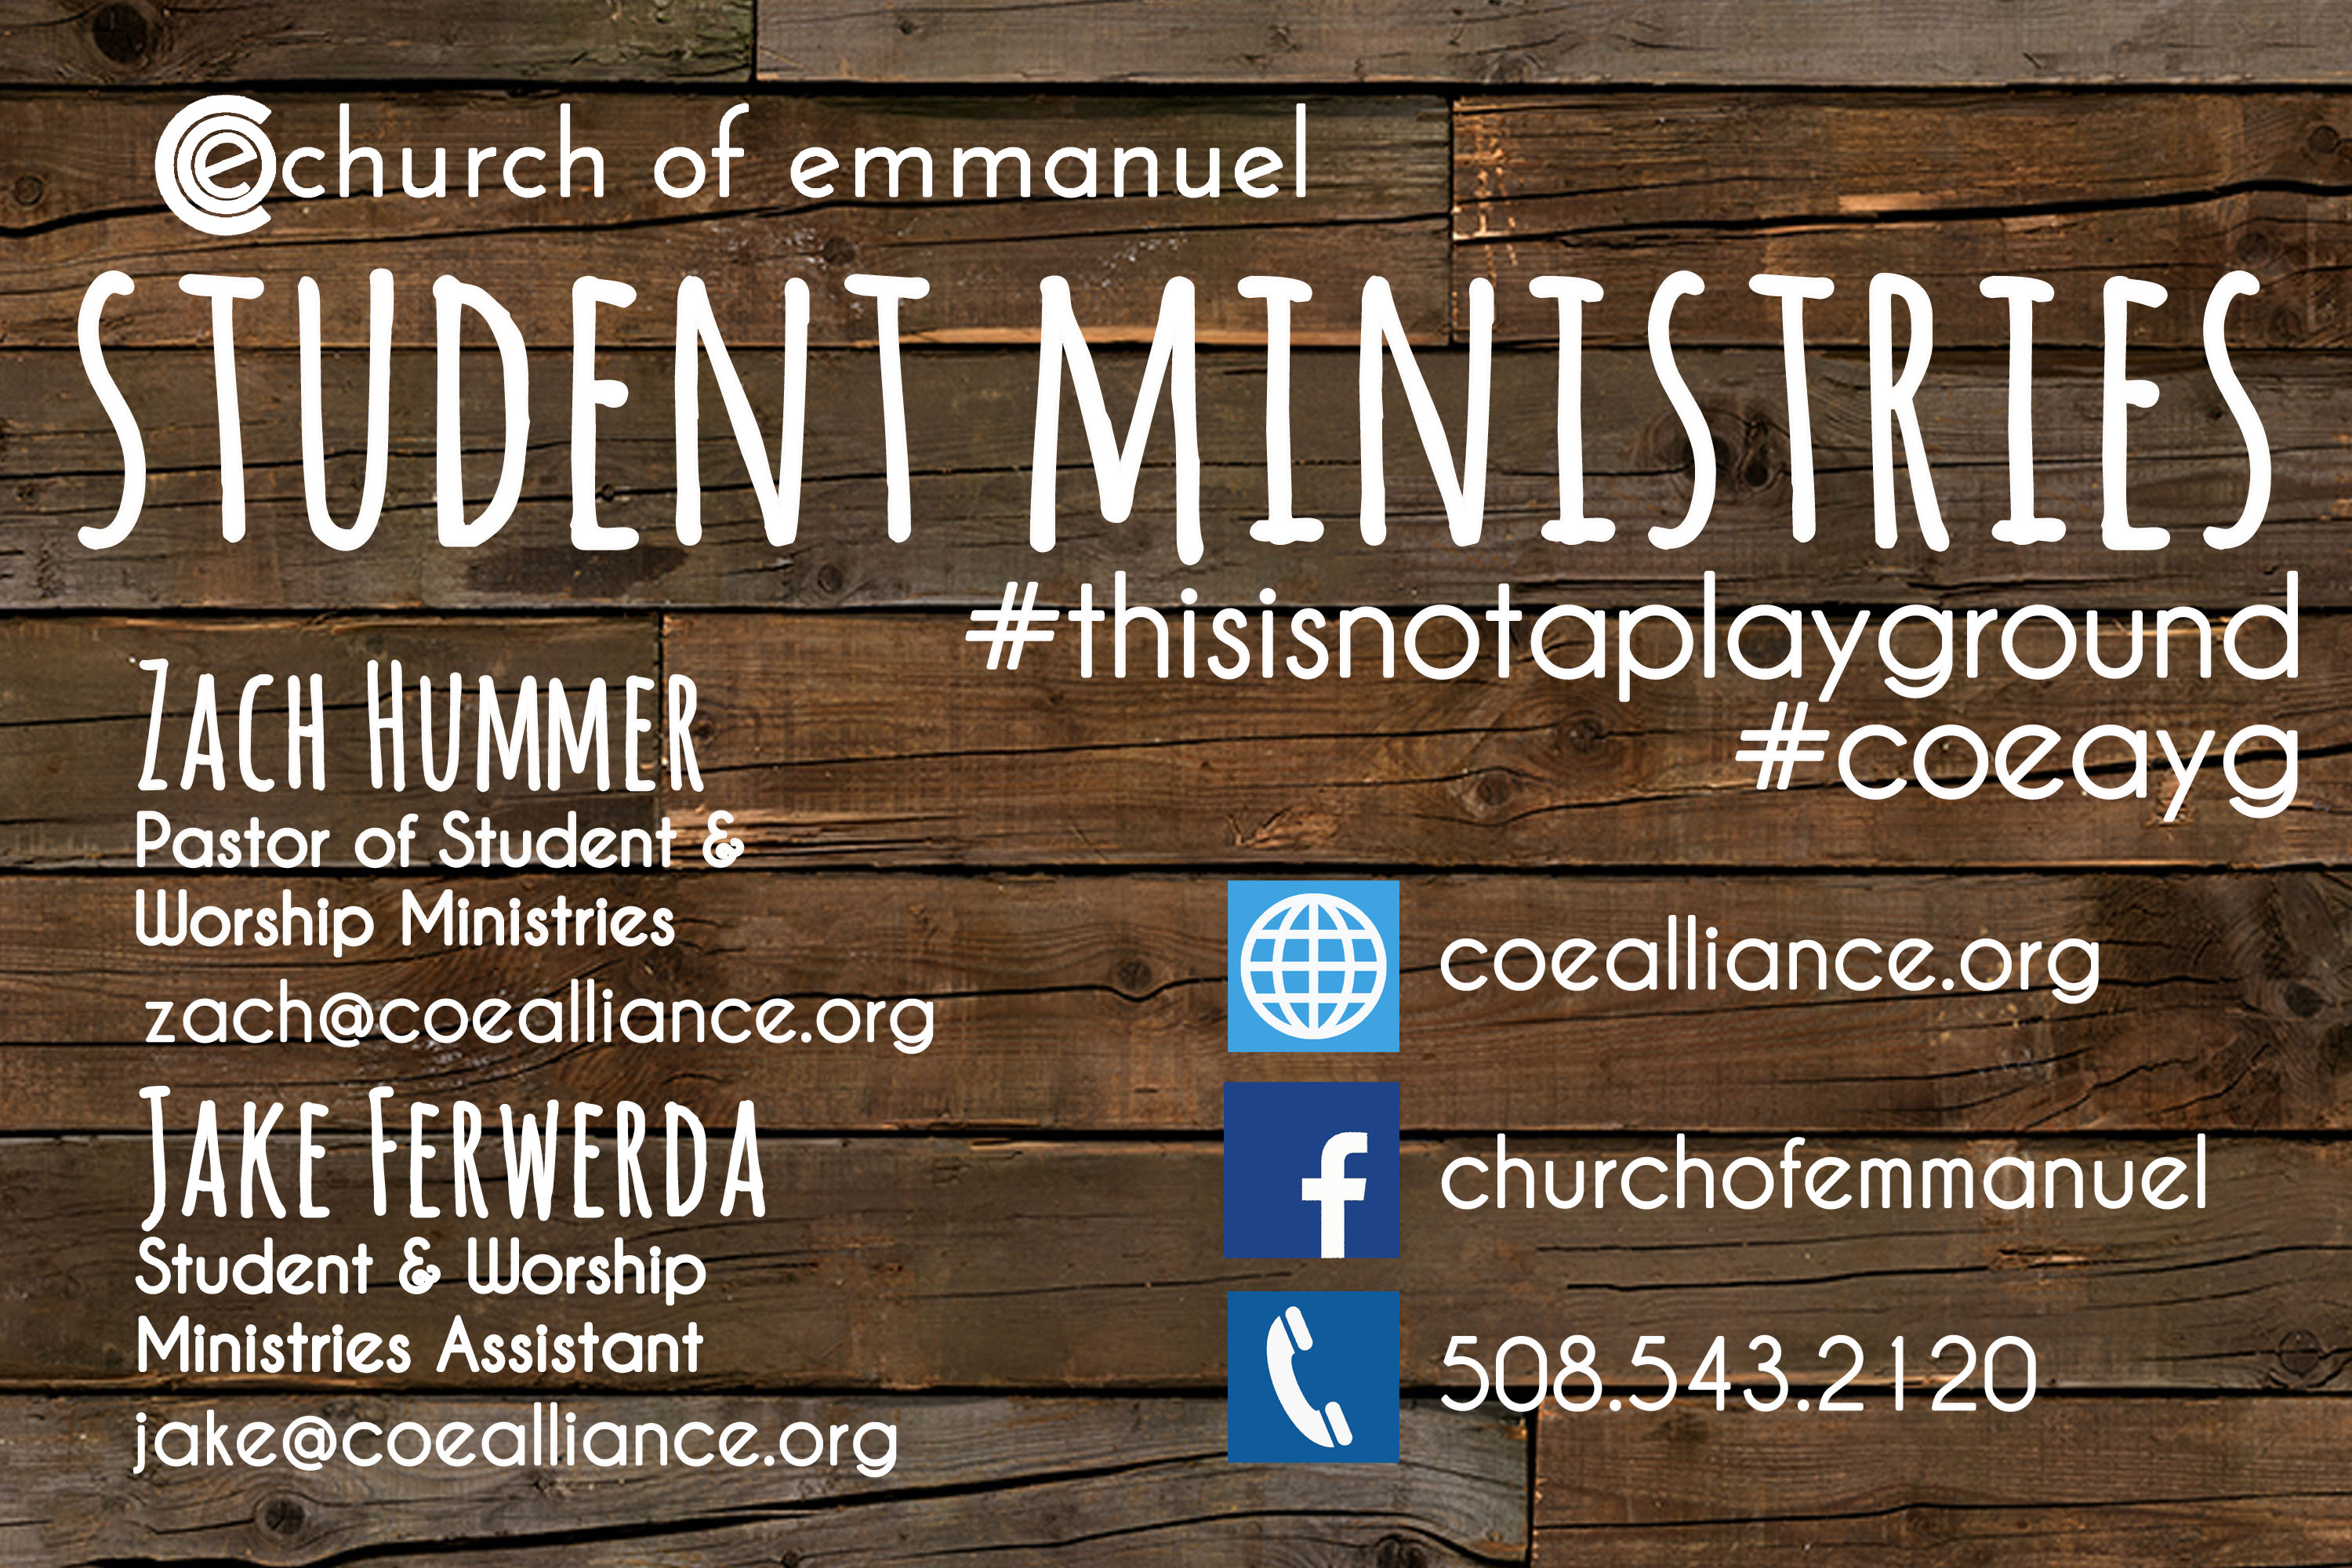 Students Ministries